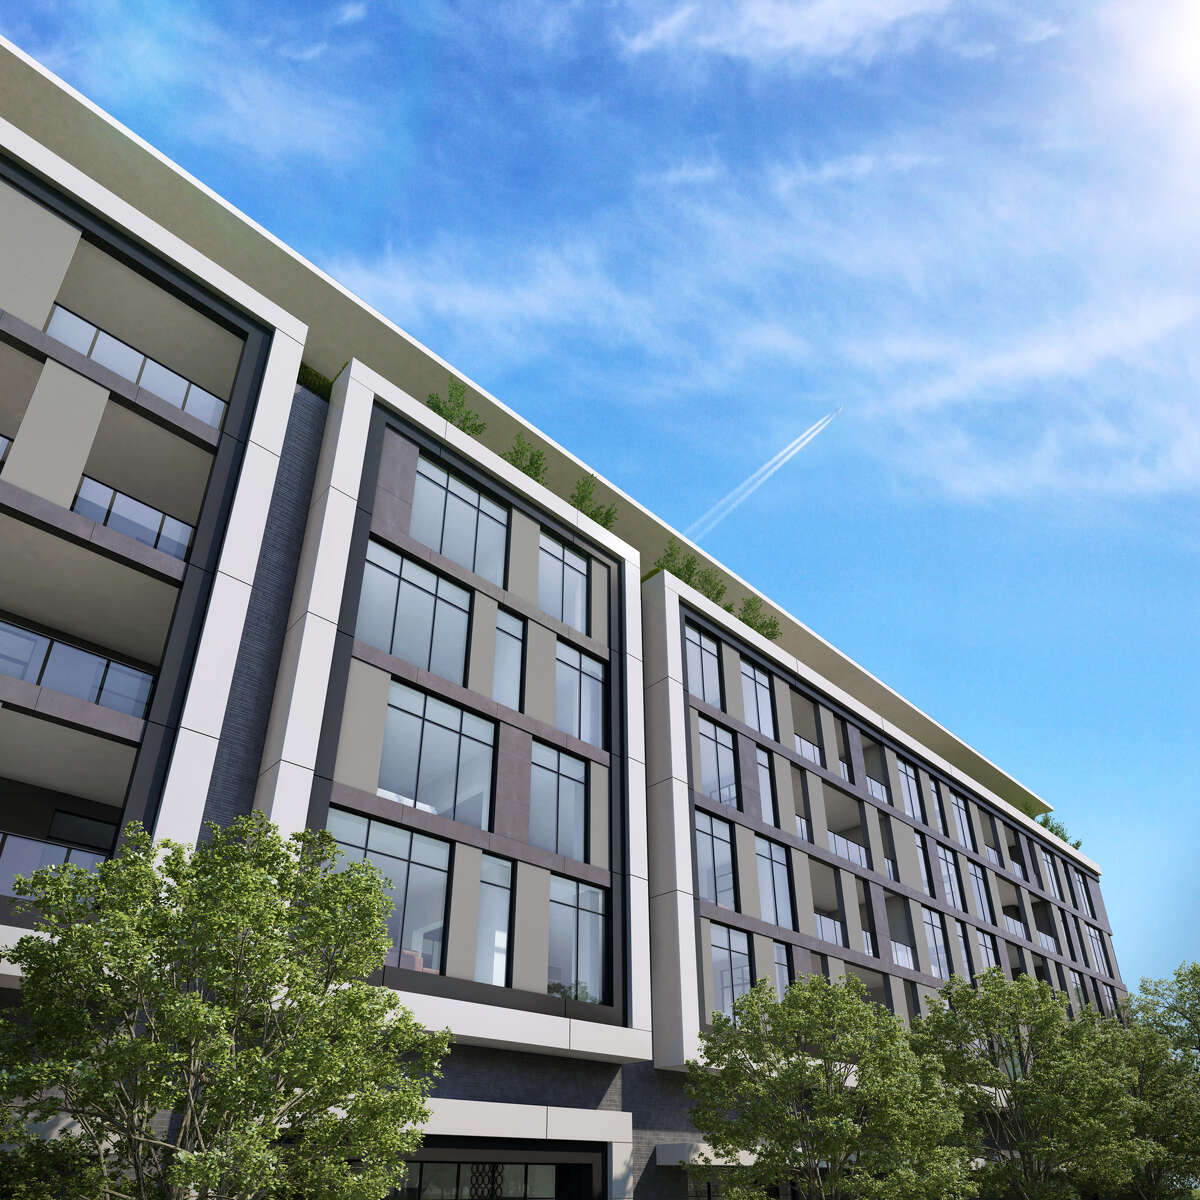 Renderings of a condo project planned for Steel Street in Upper Kirby. The project will carry a 118-year-old Italian furniture maker Giorgetti's brand. The project is a collaboration between the luxury Italian designer, Stolz Parnters, Mirador Group and Sudoff Companies.